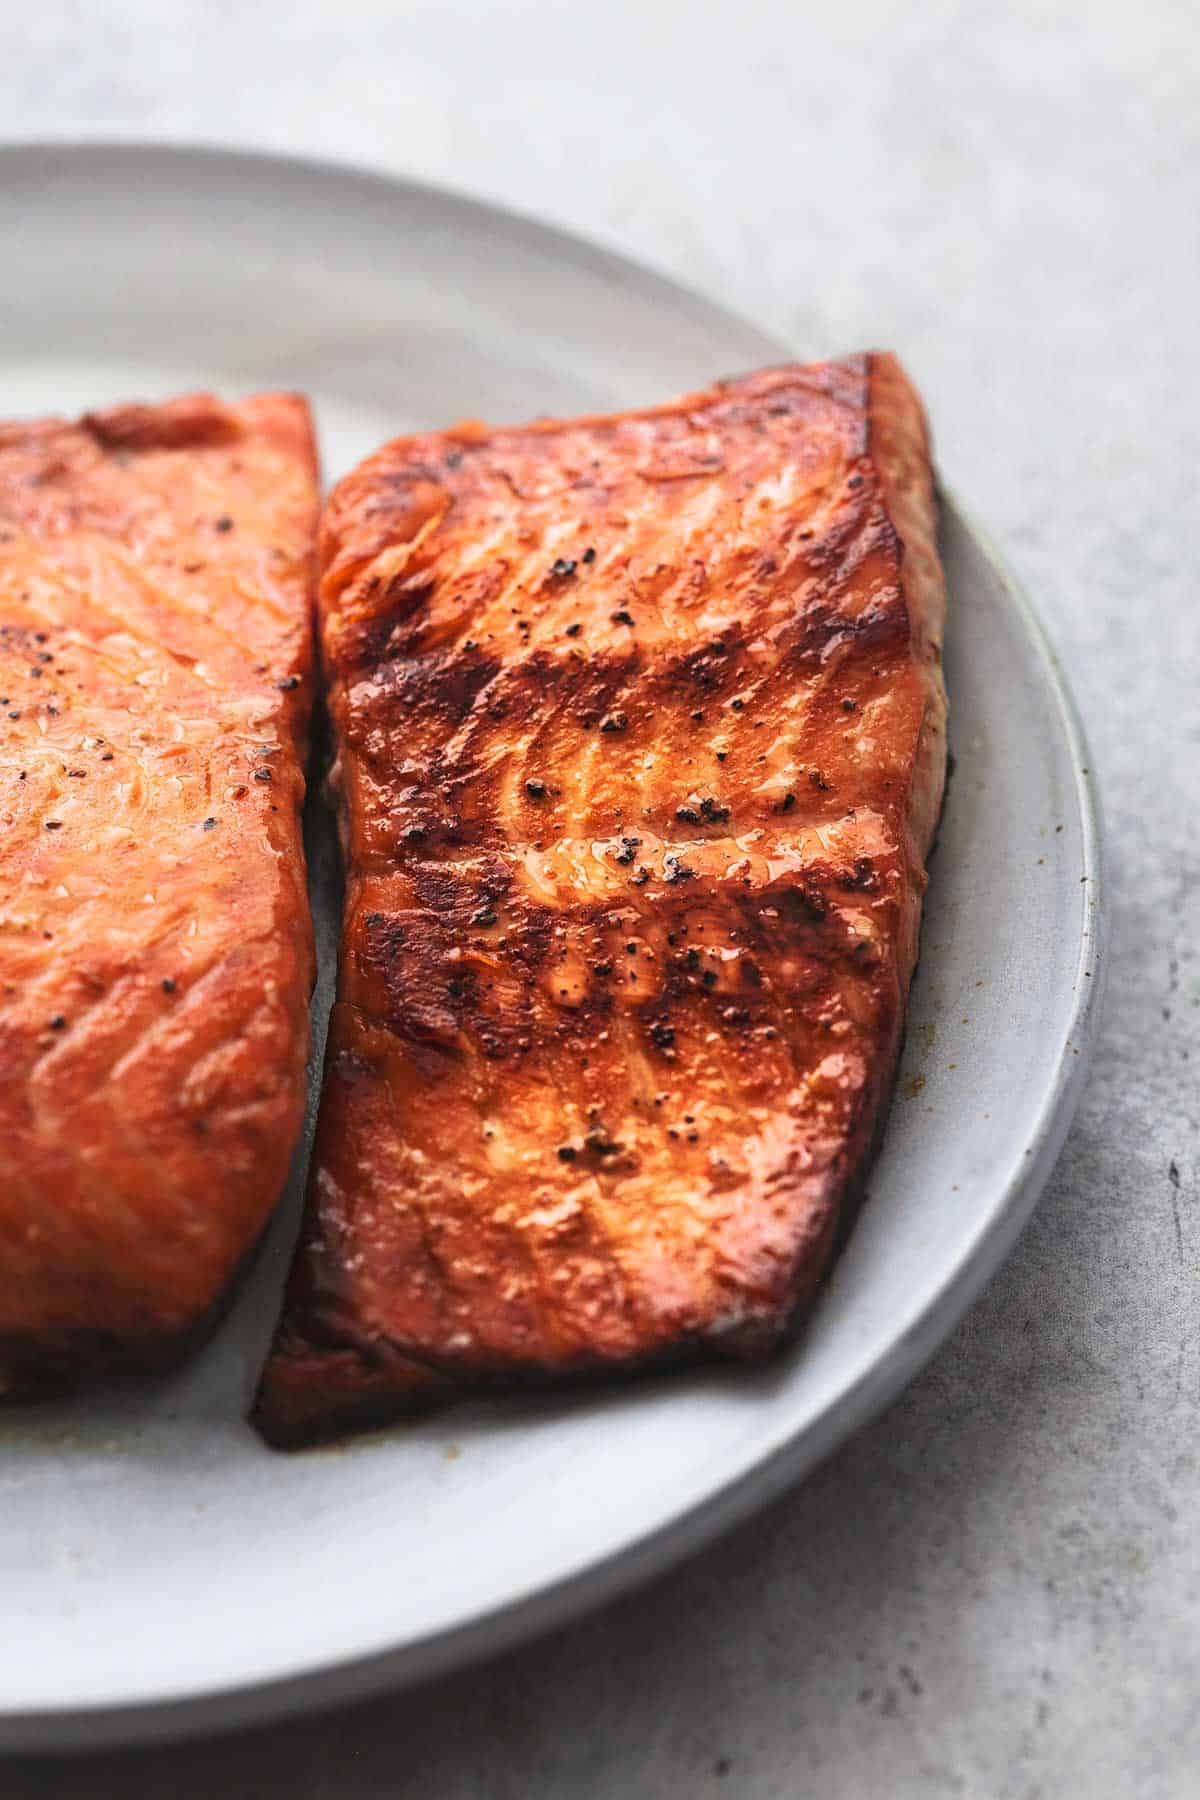 close up of cooked salmon on a plate.